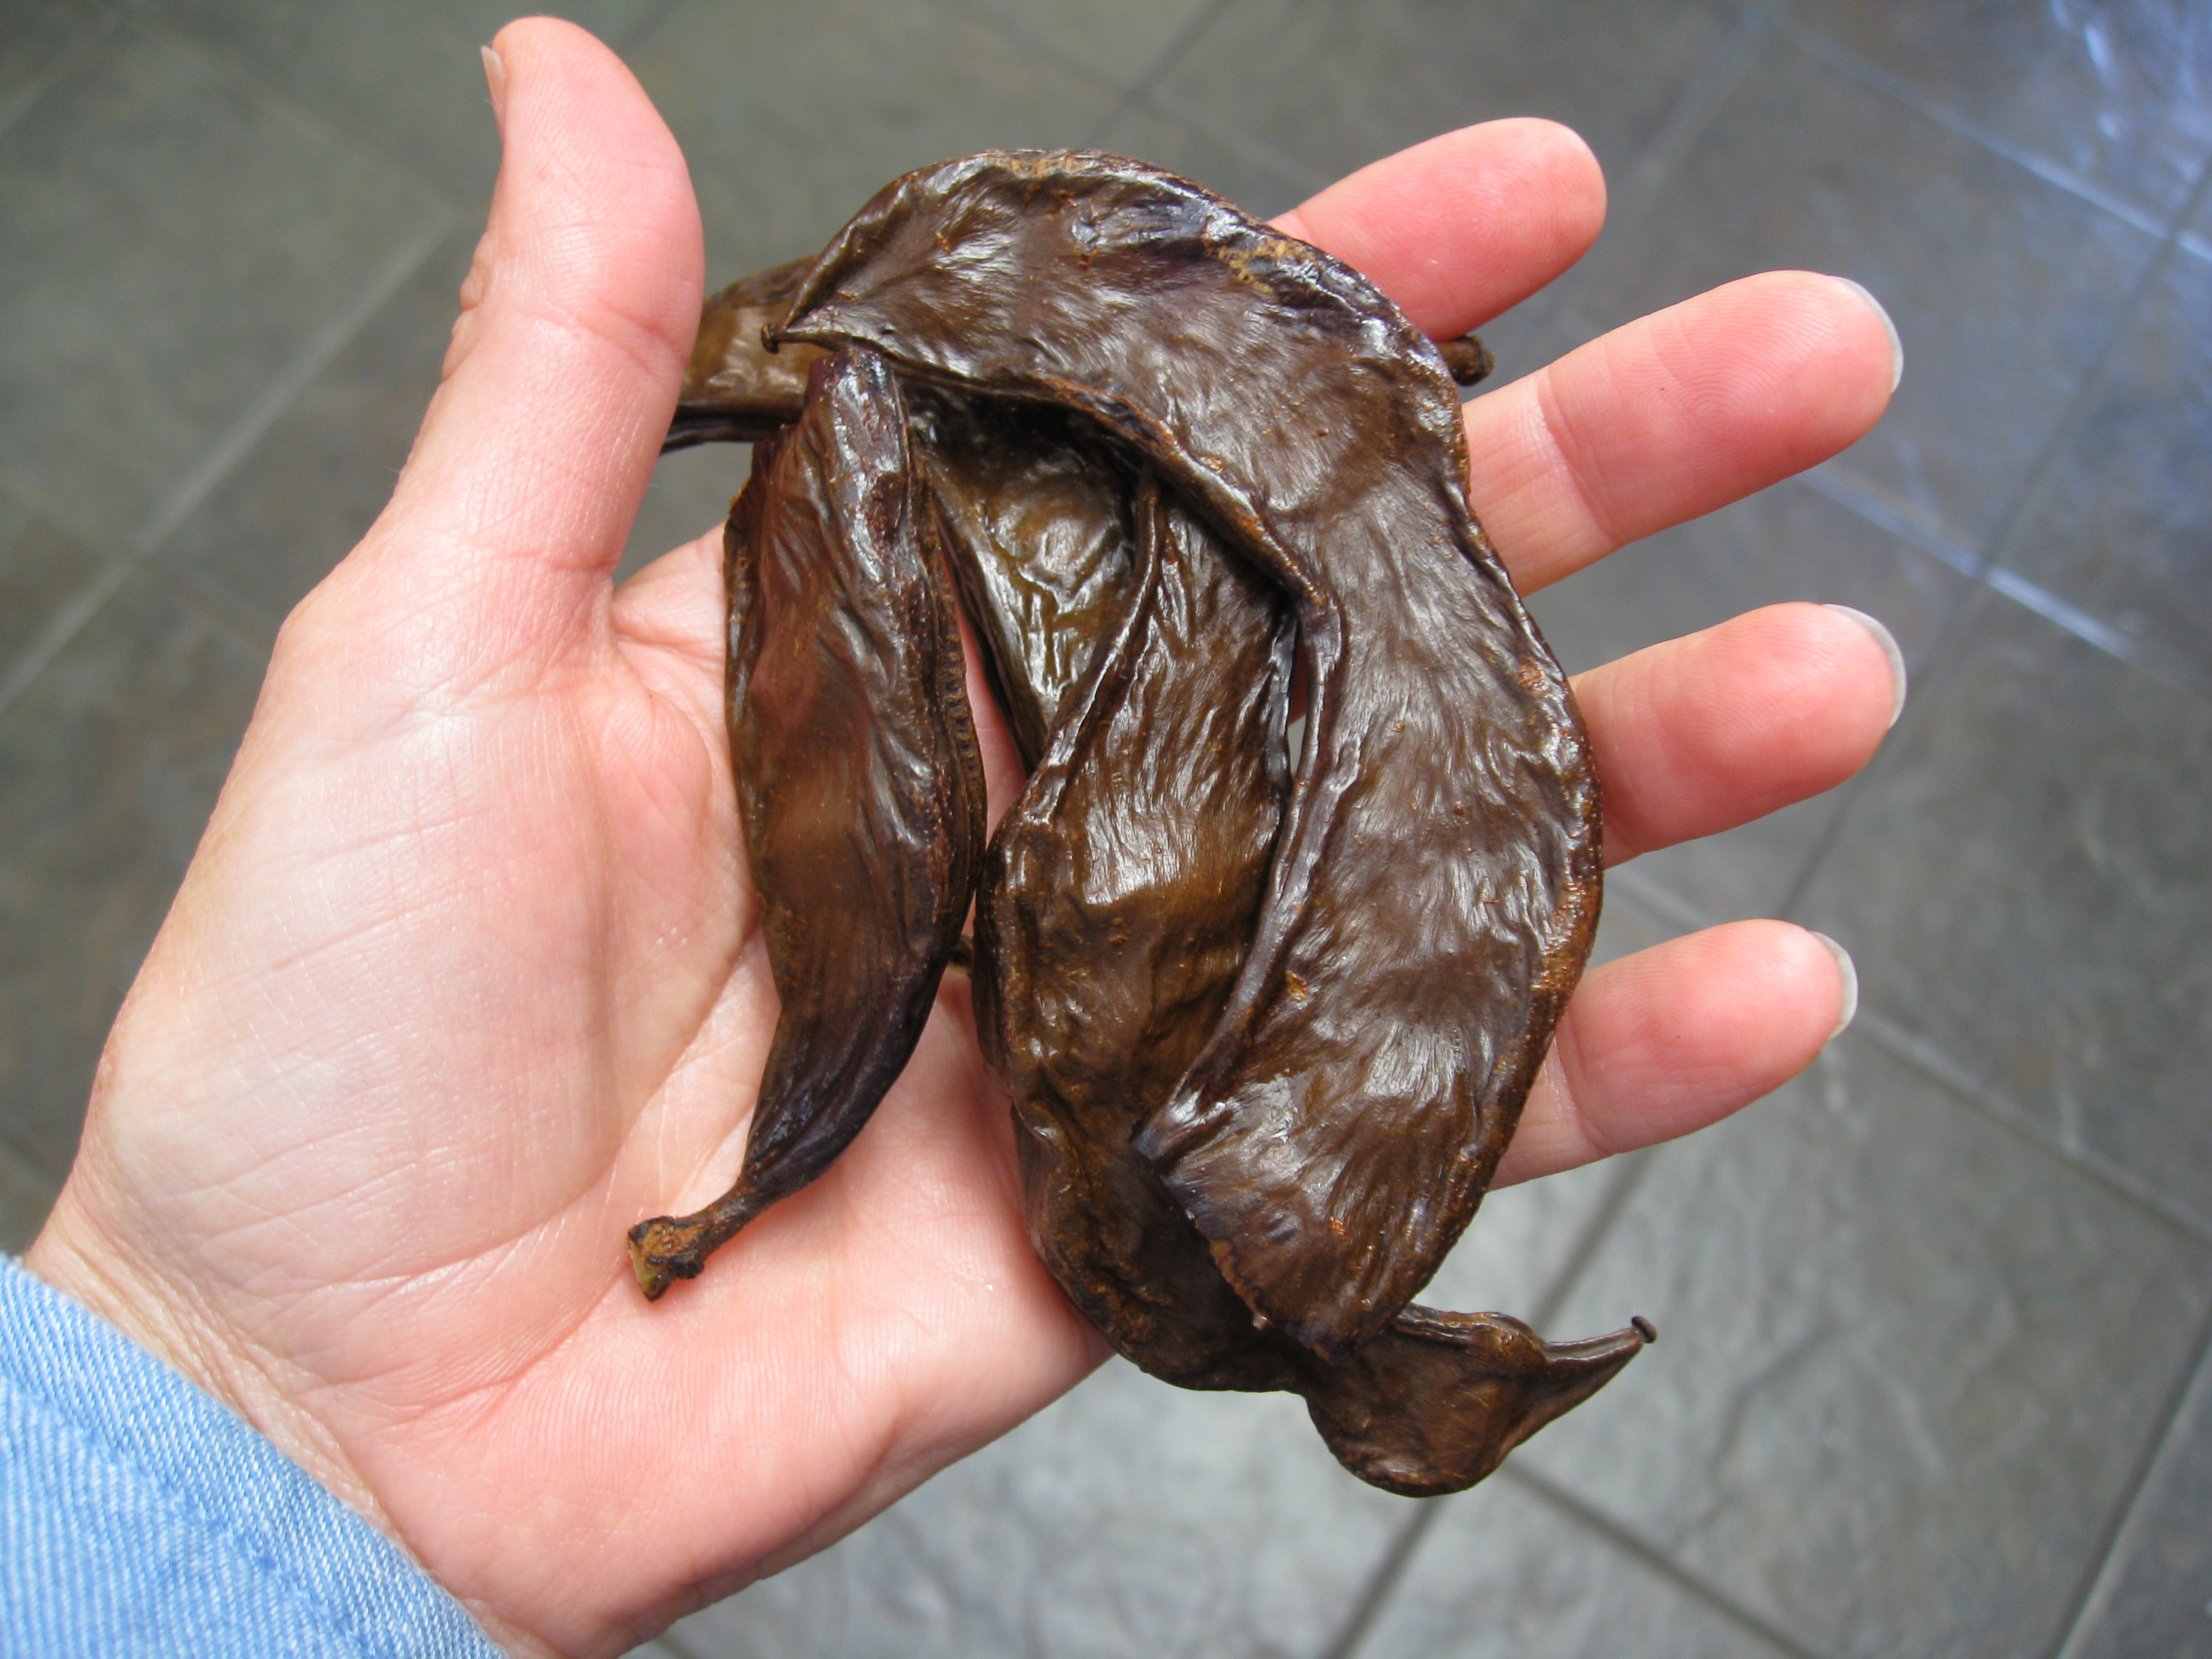 Technically a fruit, carob pods are eaten while the seeds are discarded.